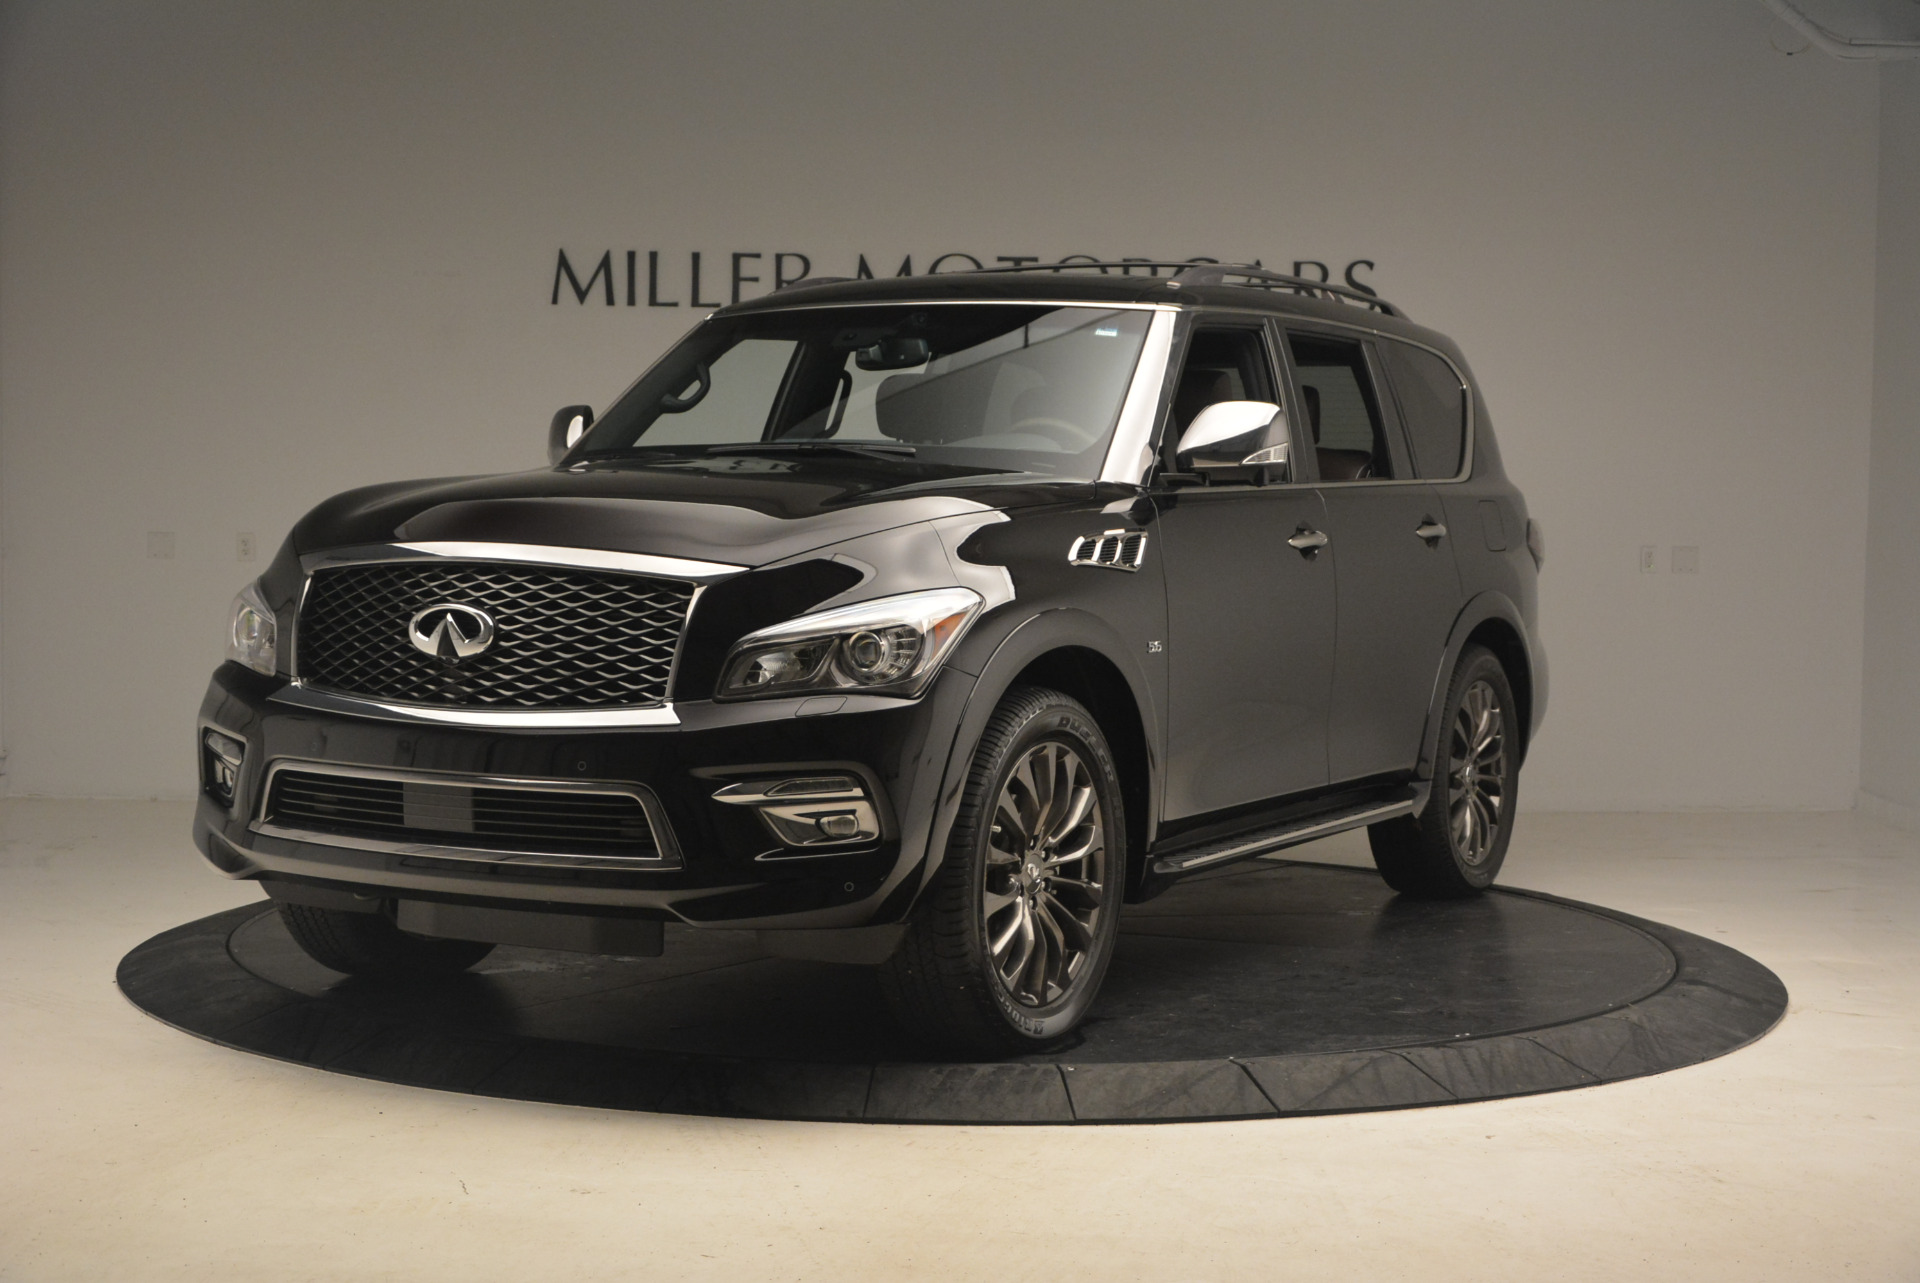 Used 2015 INFINITI QX80 Limited 4WD for sale Sold at Bentley Greenwich in Greenwich CT 06830 1